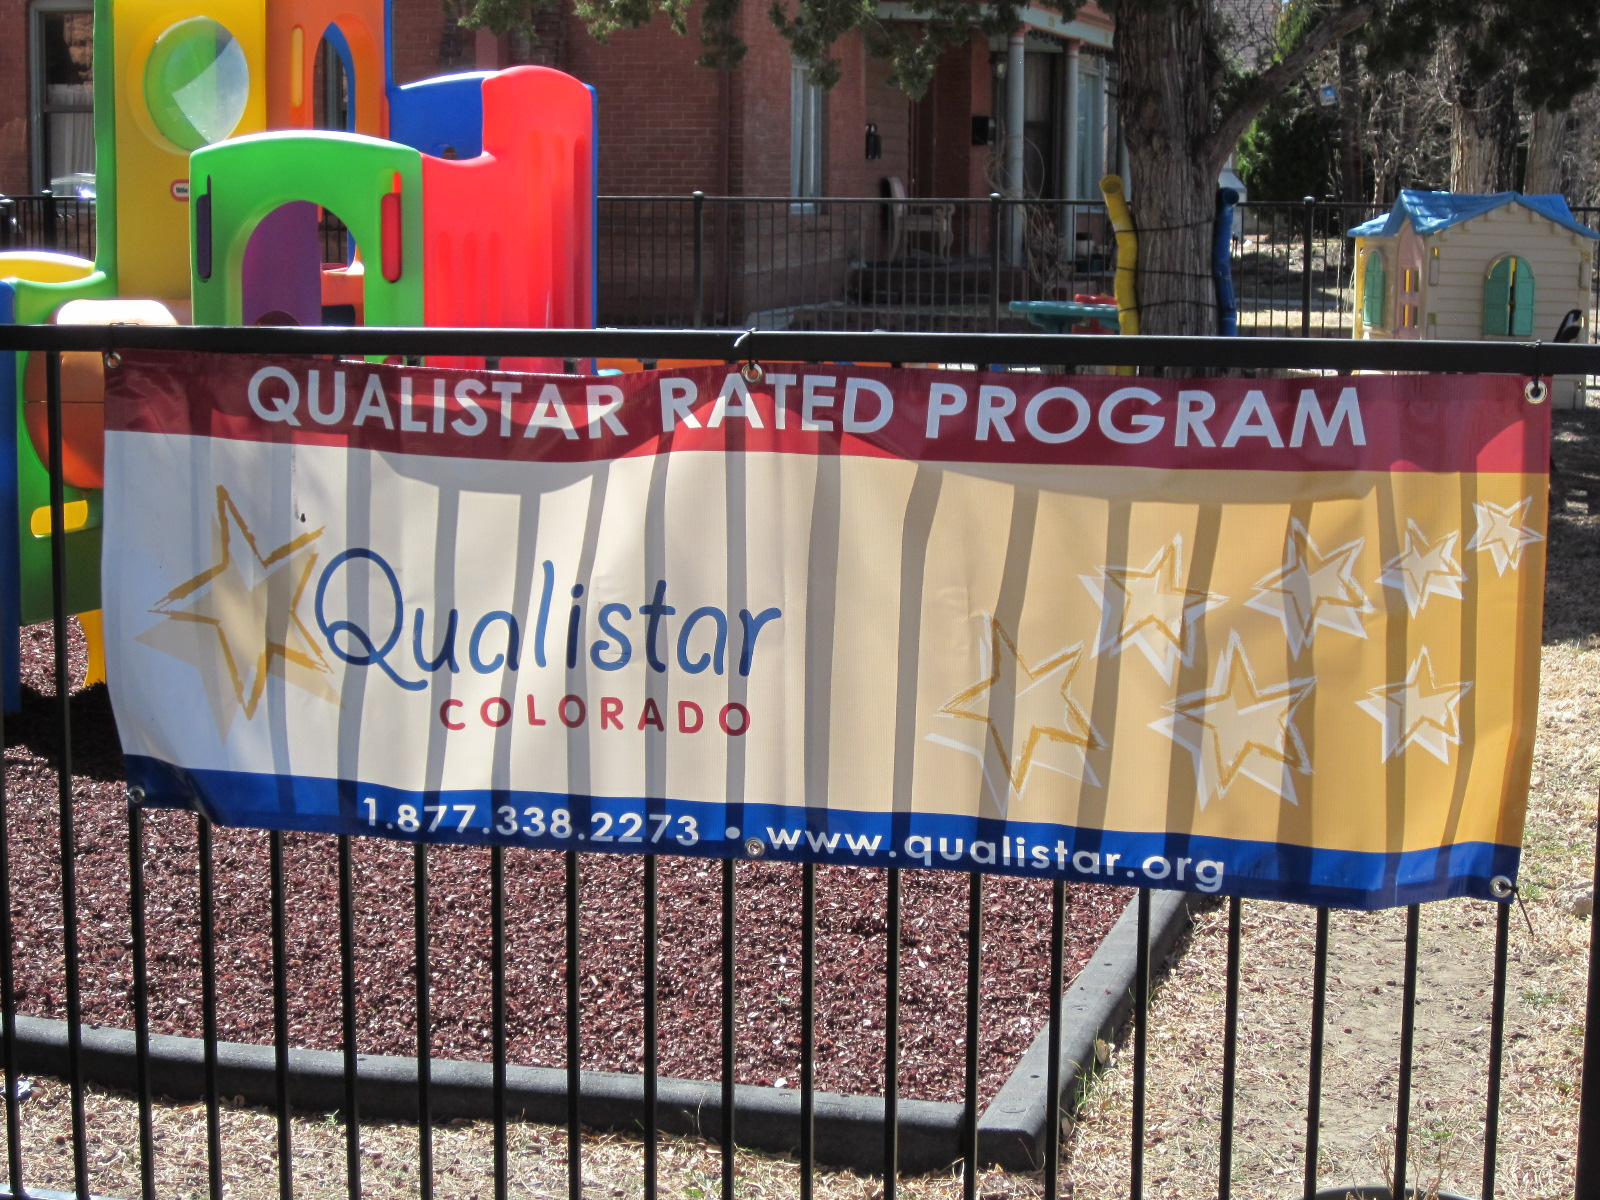 Qualistar rated program